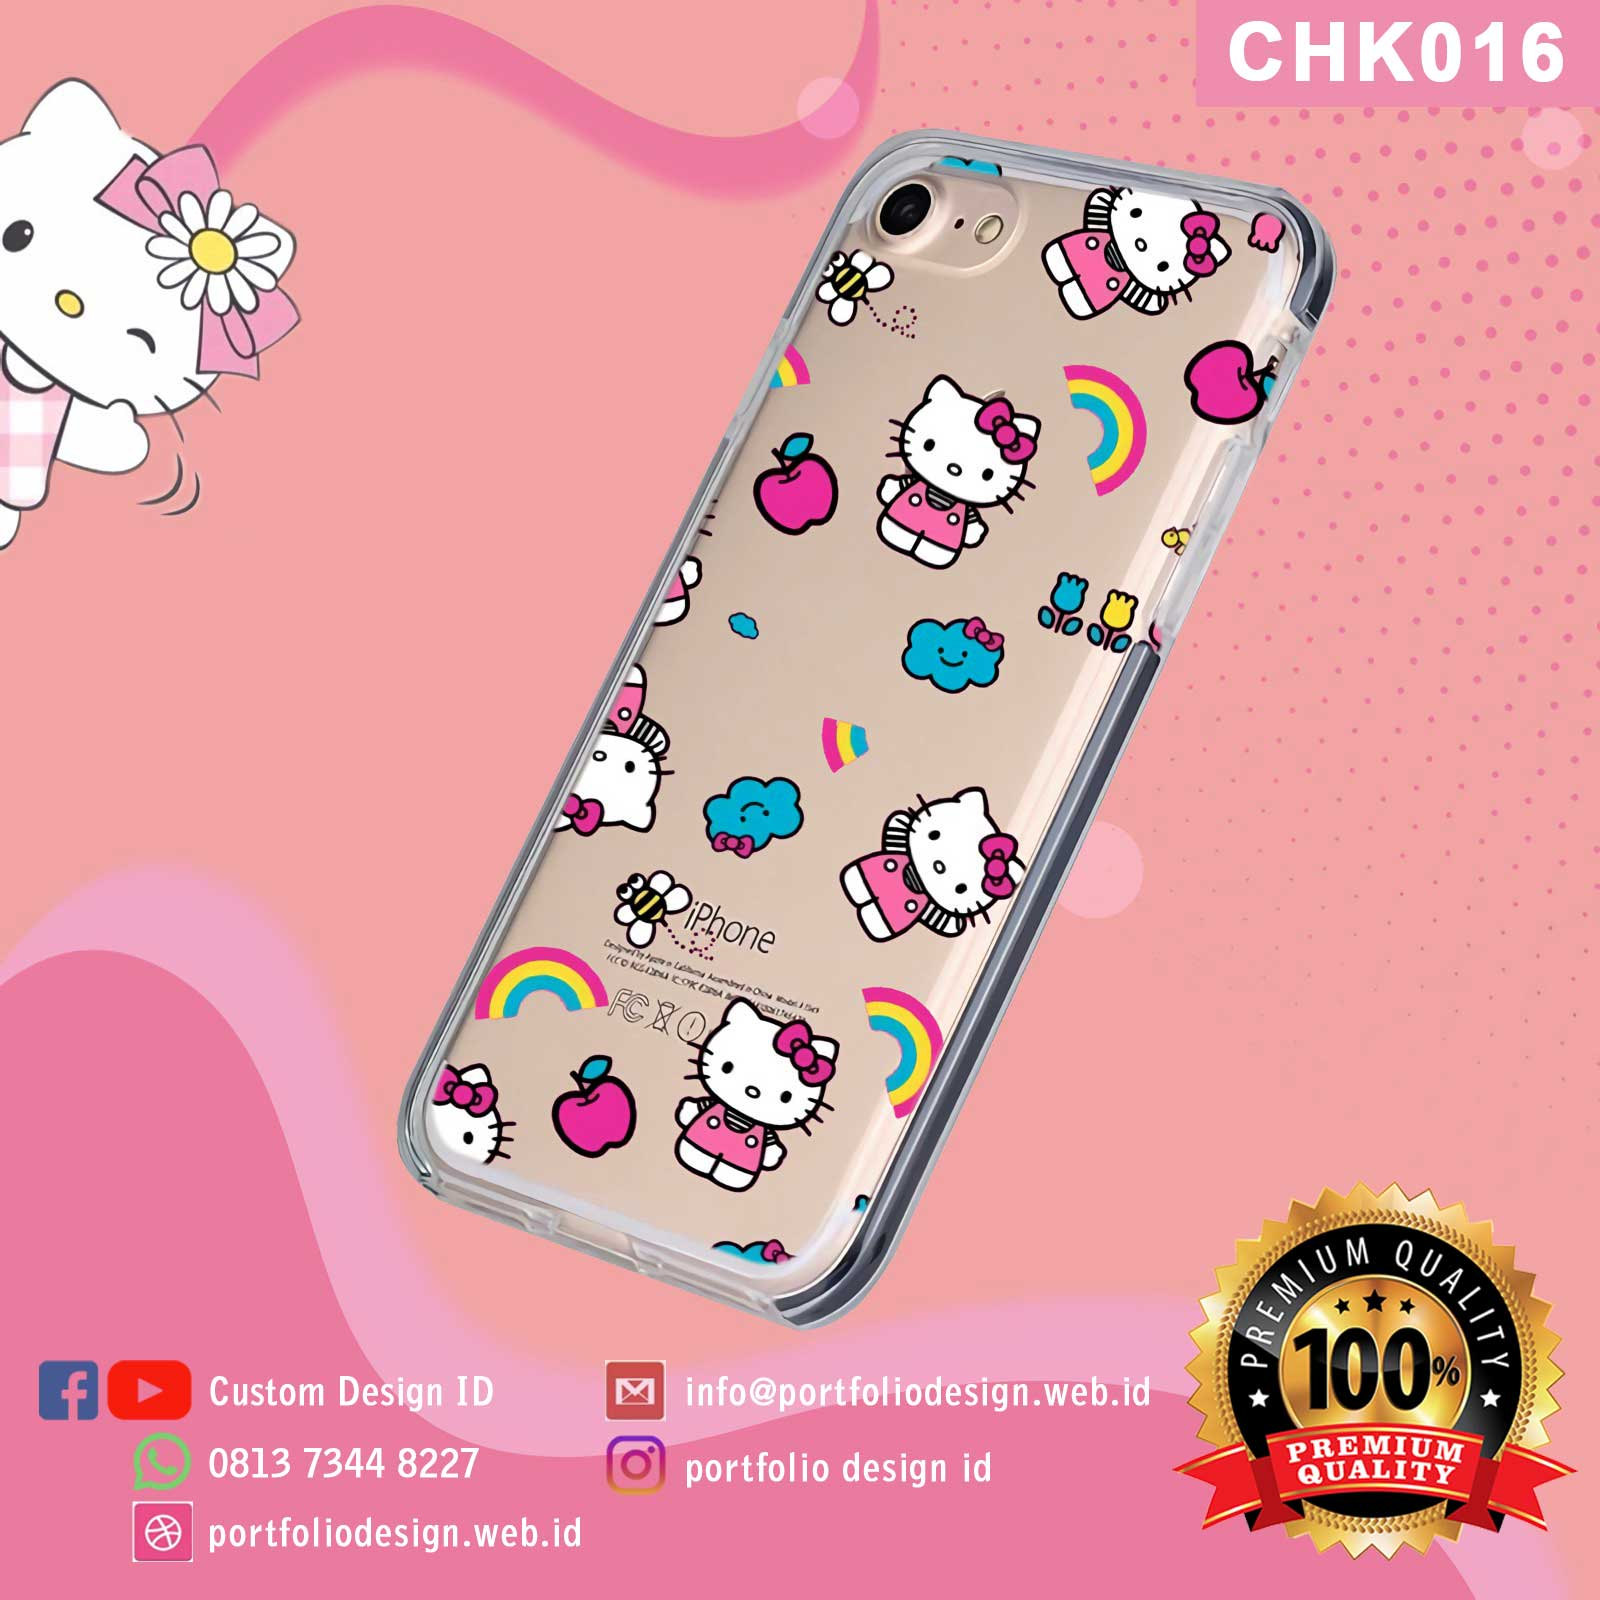 Buat custom aksesoris casing hp Hello Kitty CHK016